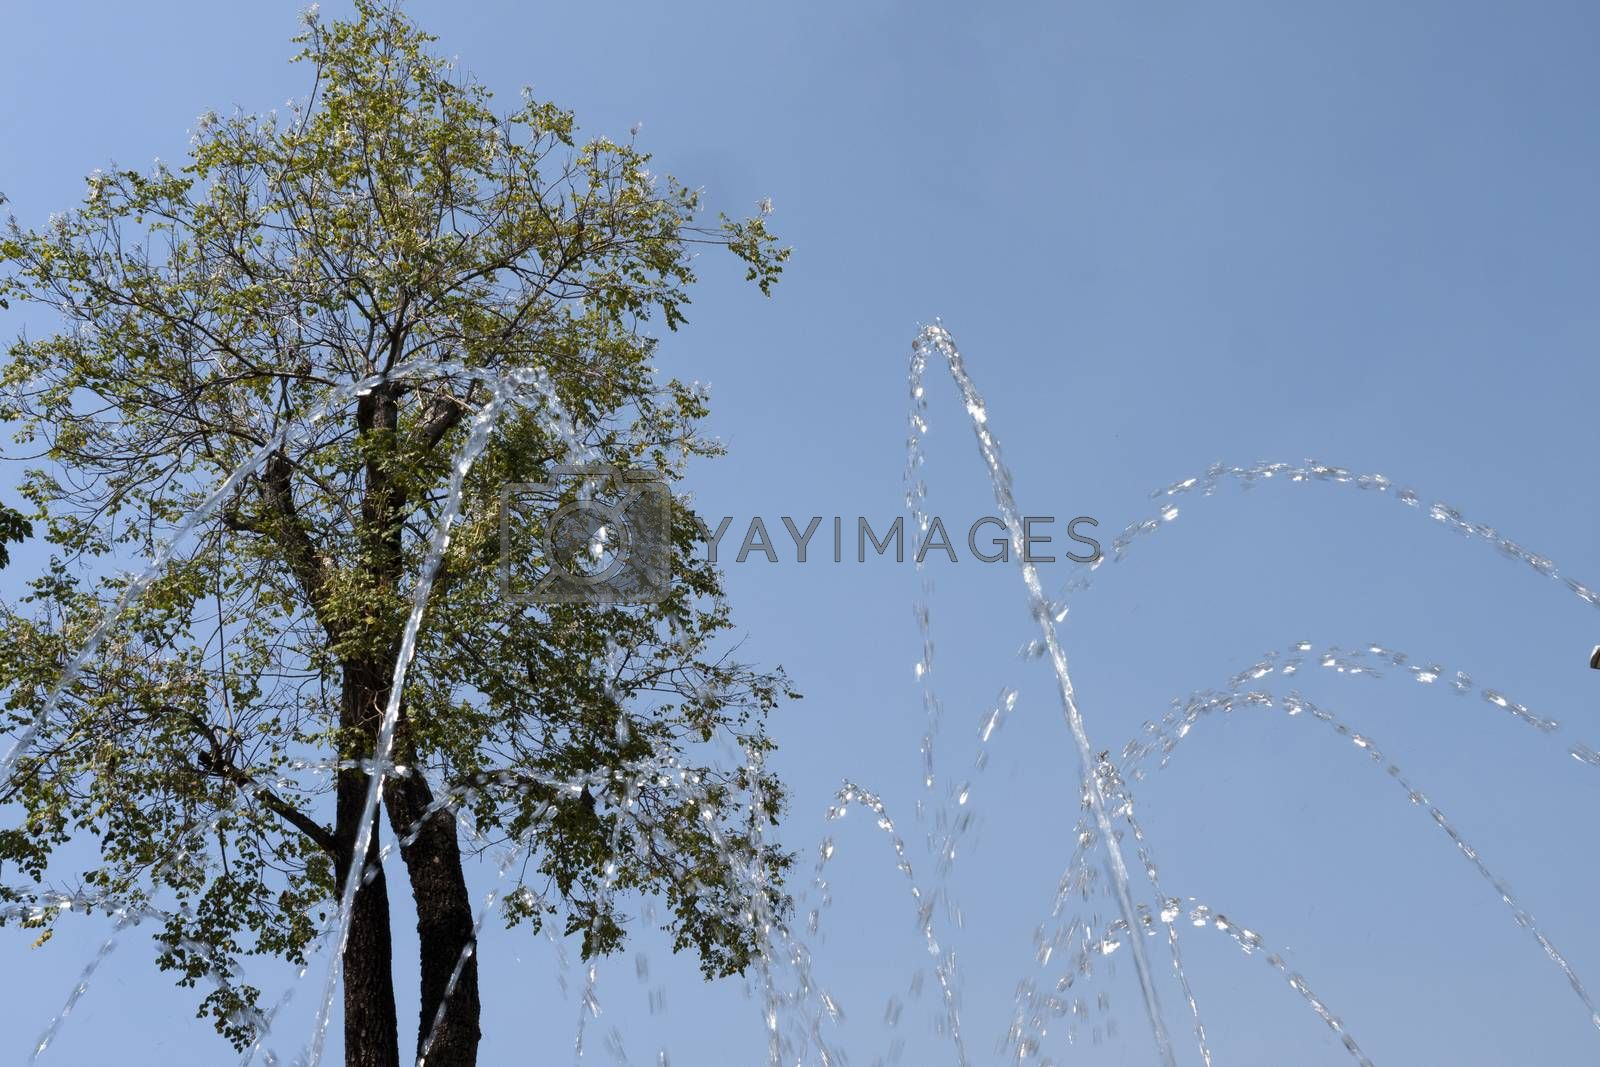 Water jet shooting from a fountain with tall tree and blue sky in the background.